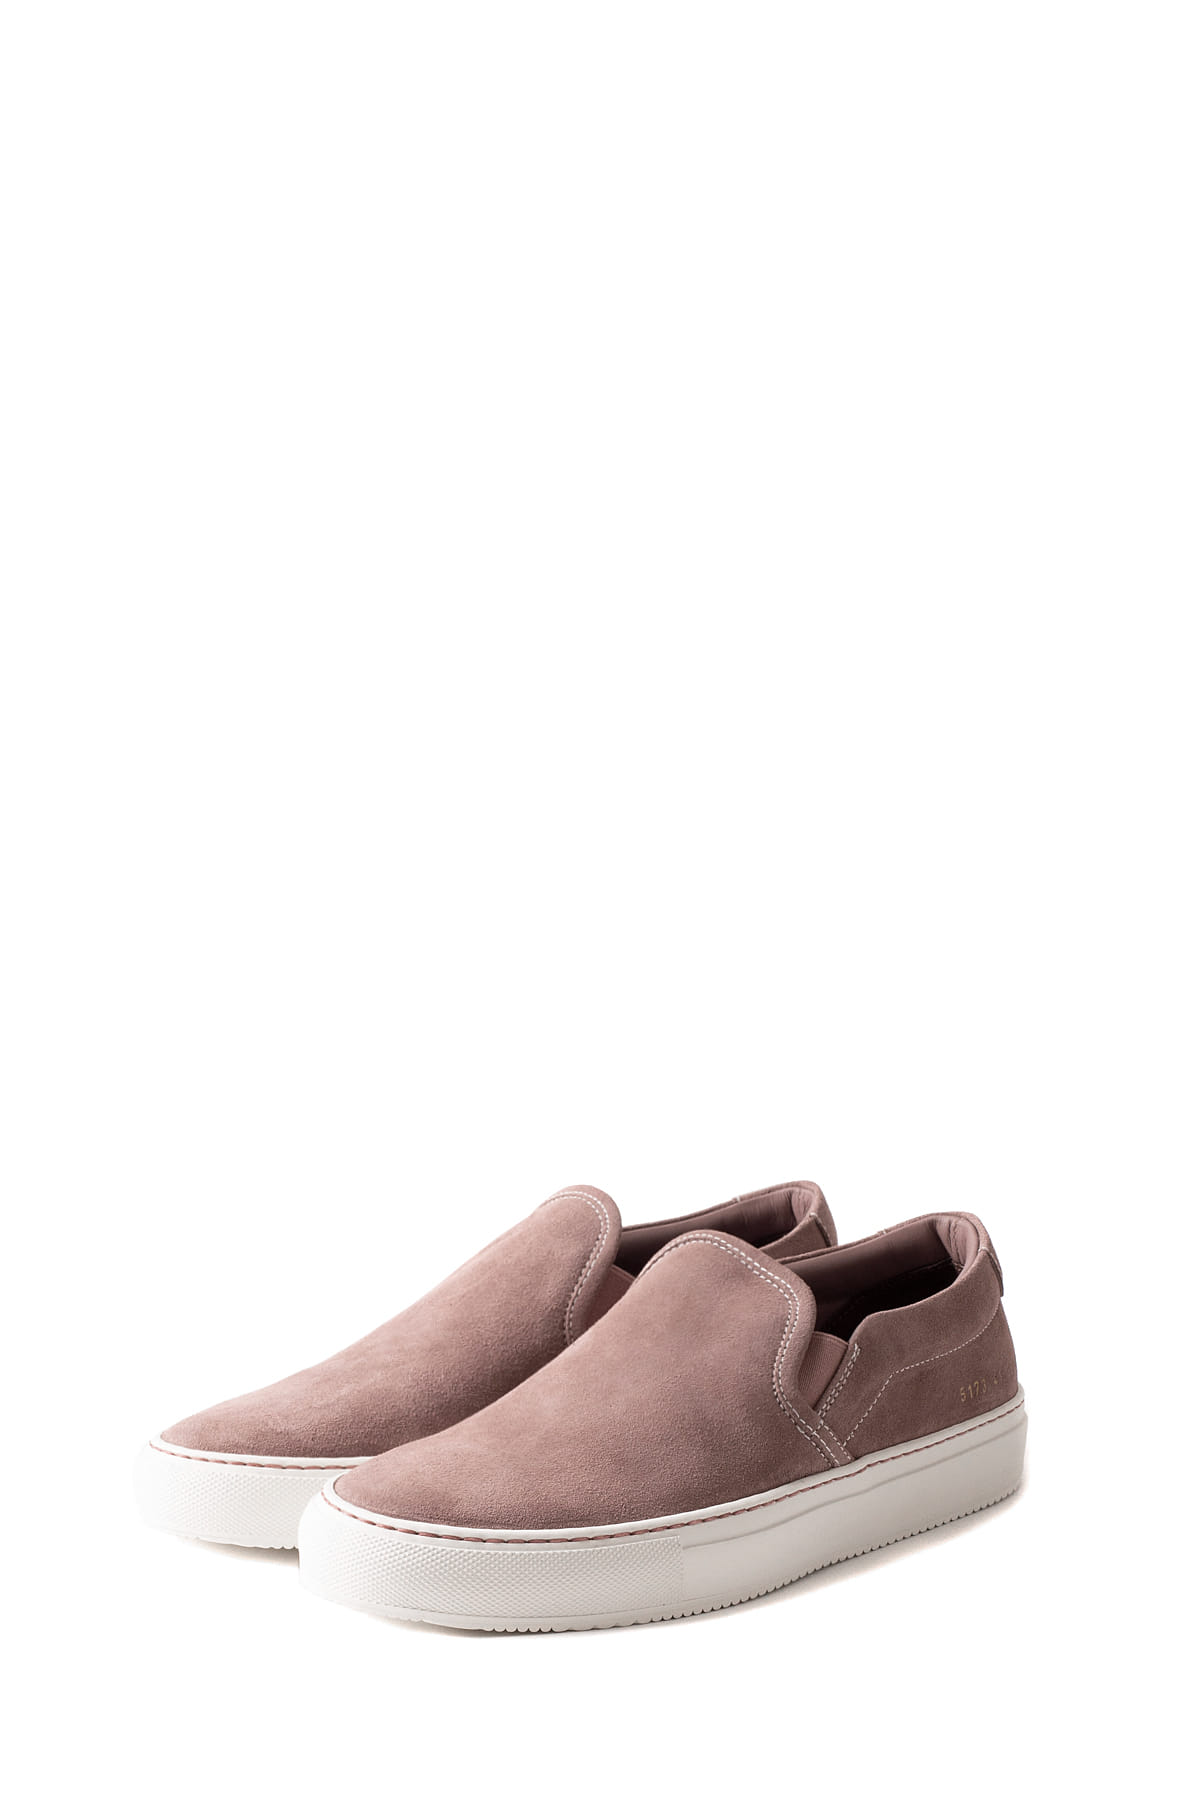 Common Projects : Slip On In Suede 5173 (Blush)